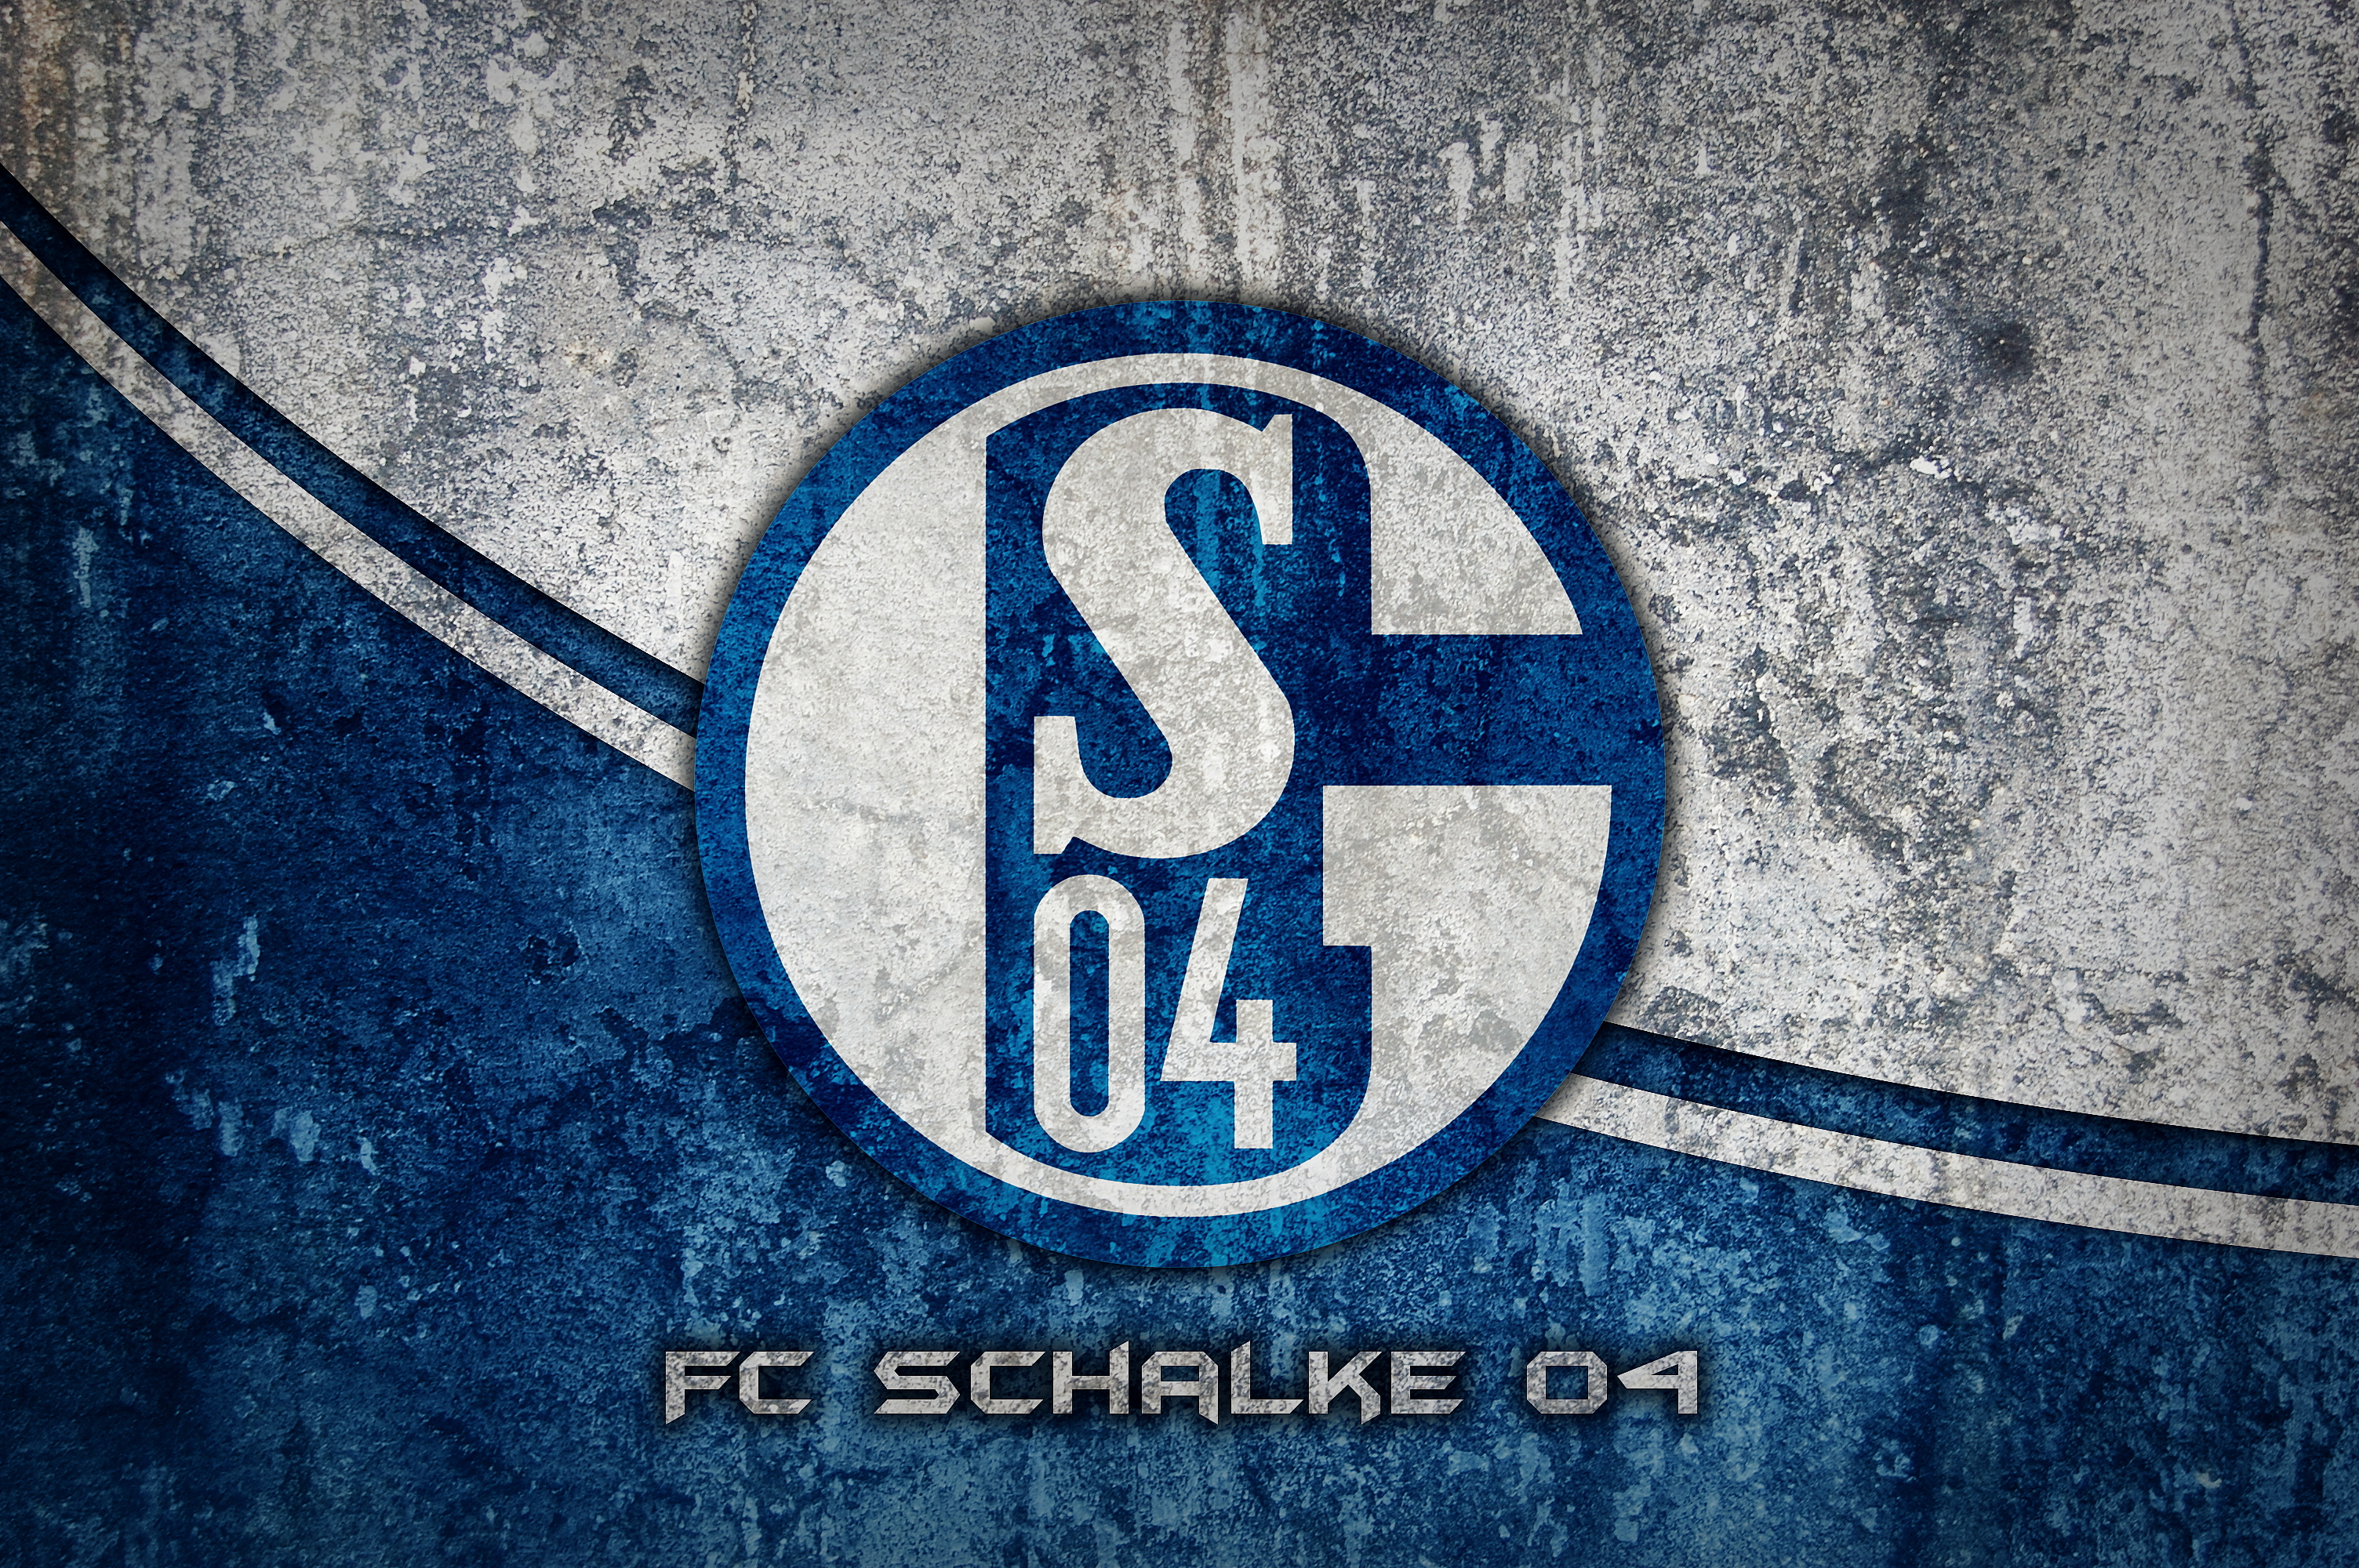 schalke. Black Bedroom Furniture Sets. Home Design Ideas